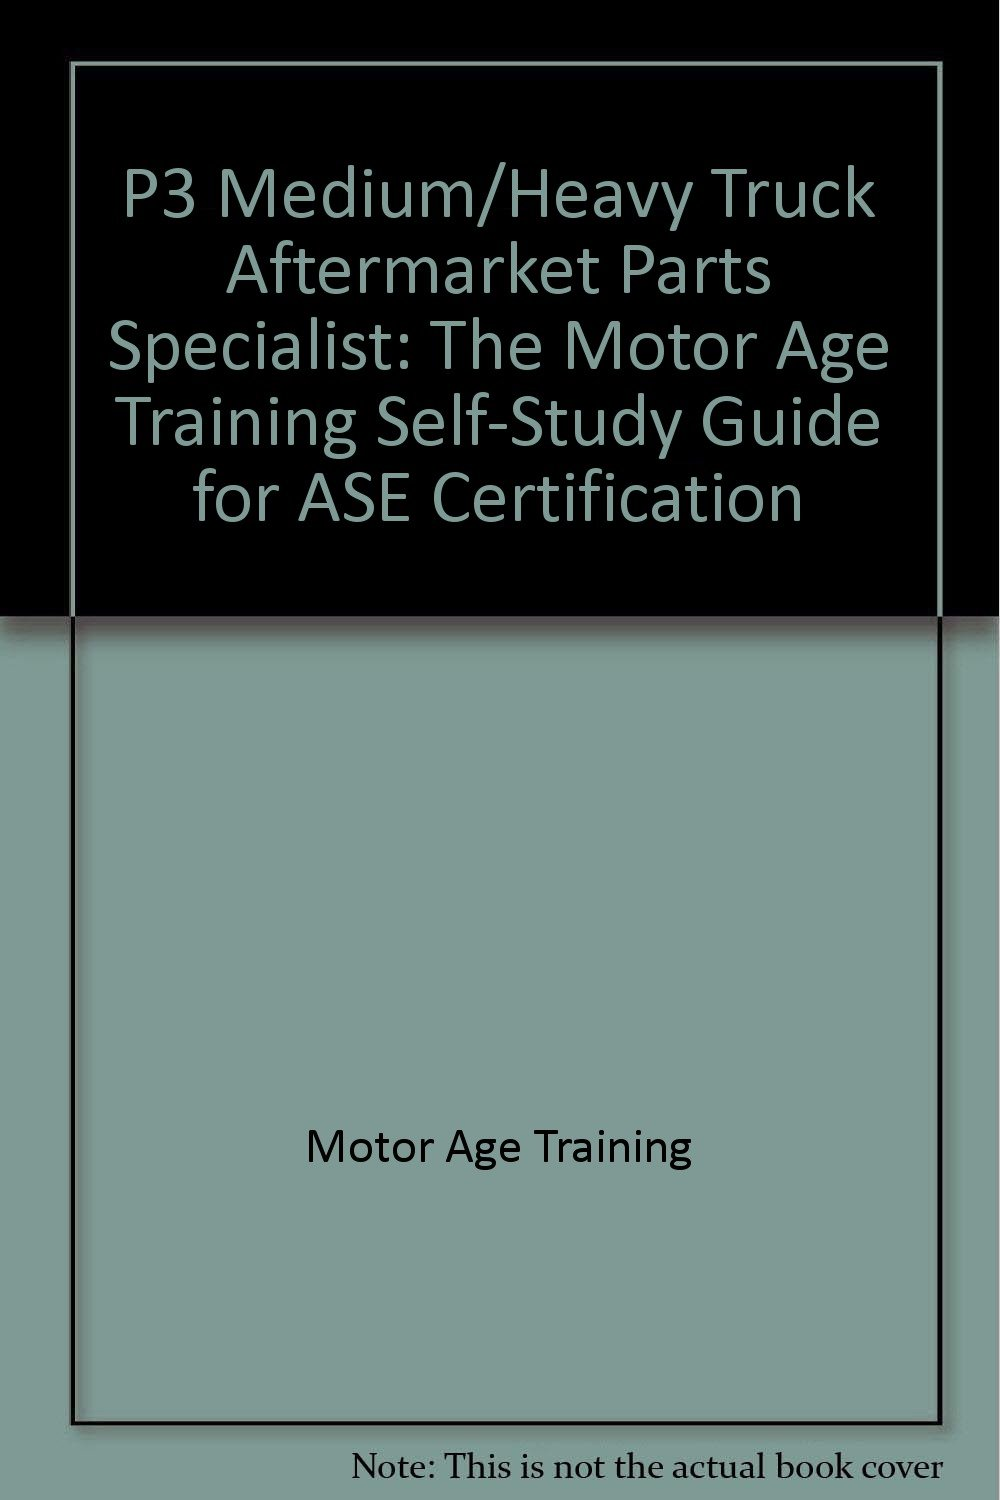 ase parts specialist certification